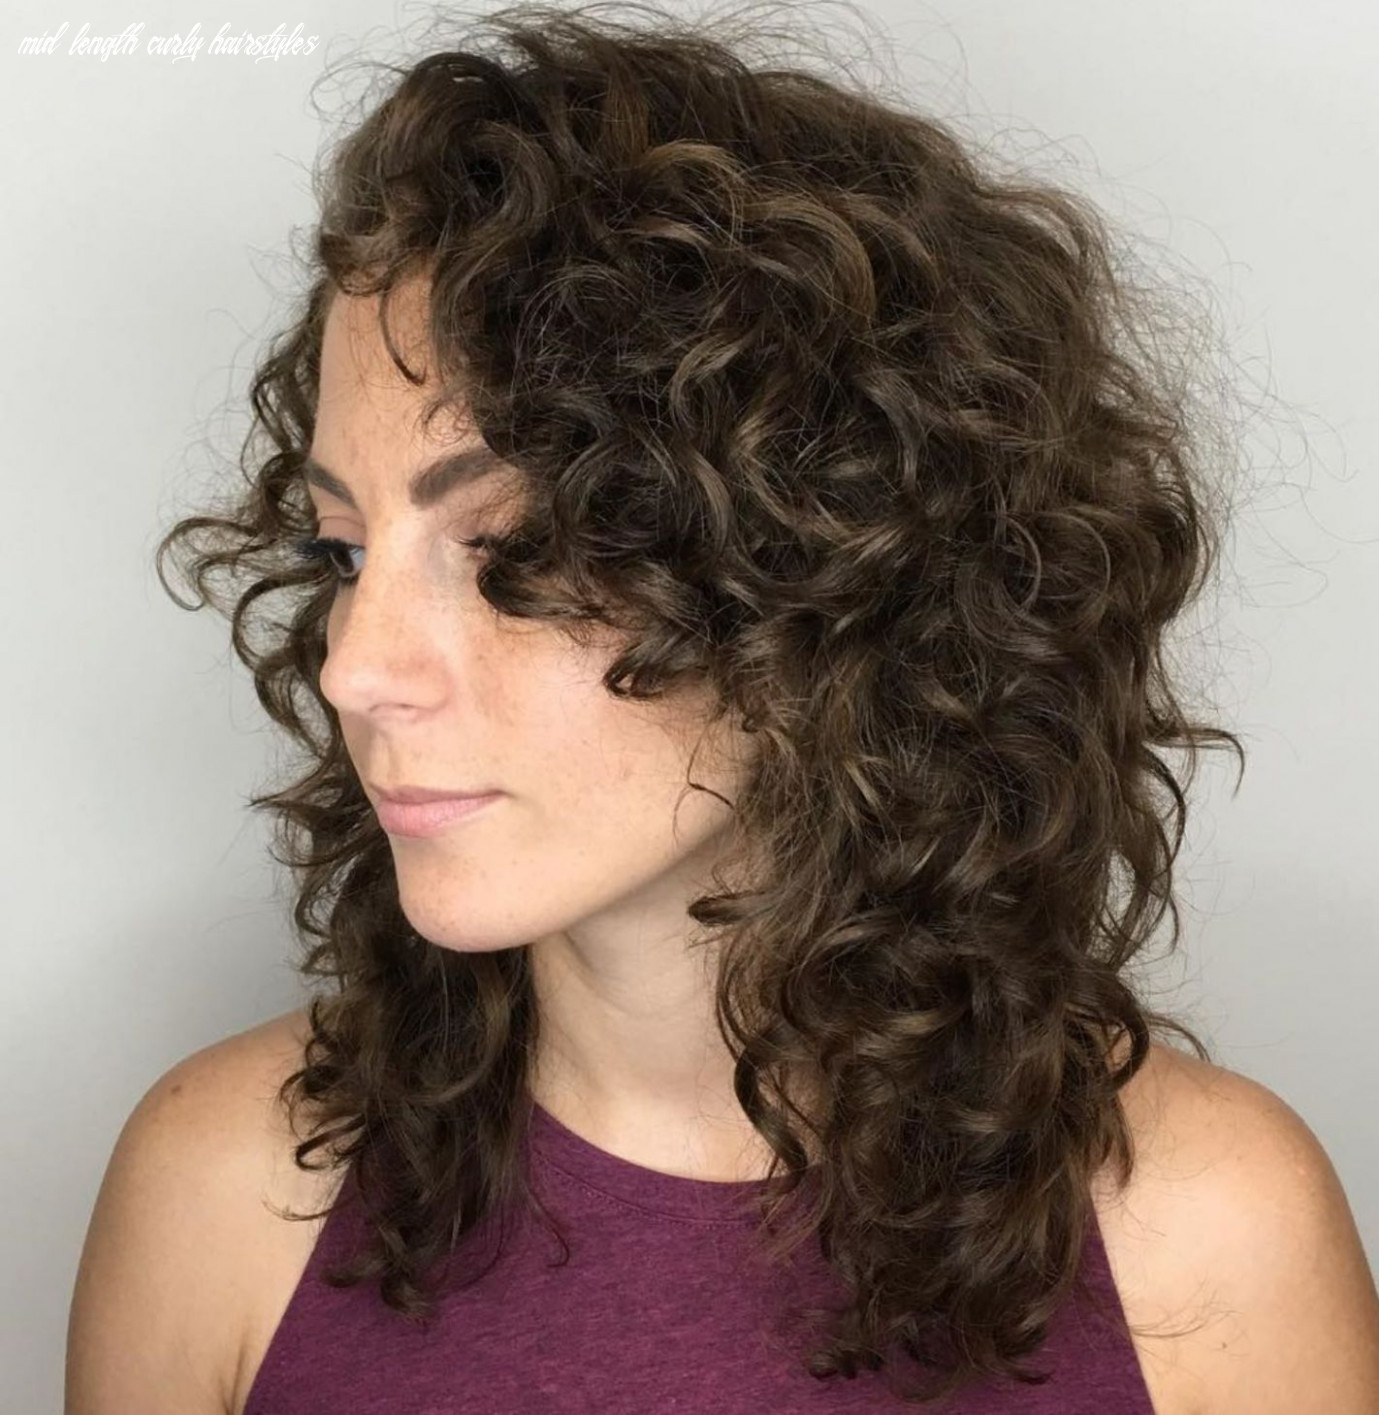 Pin on hair mid length curly hairstyles